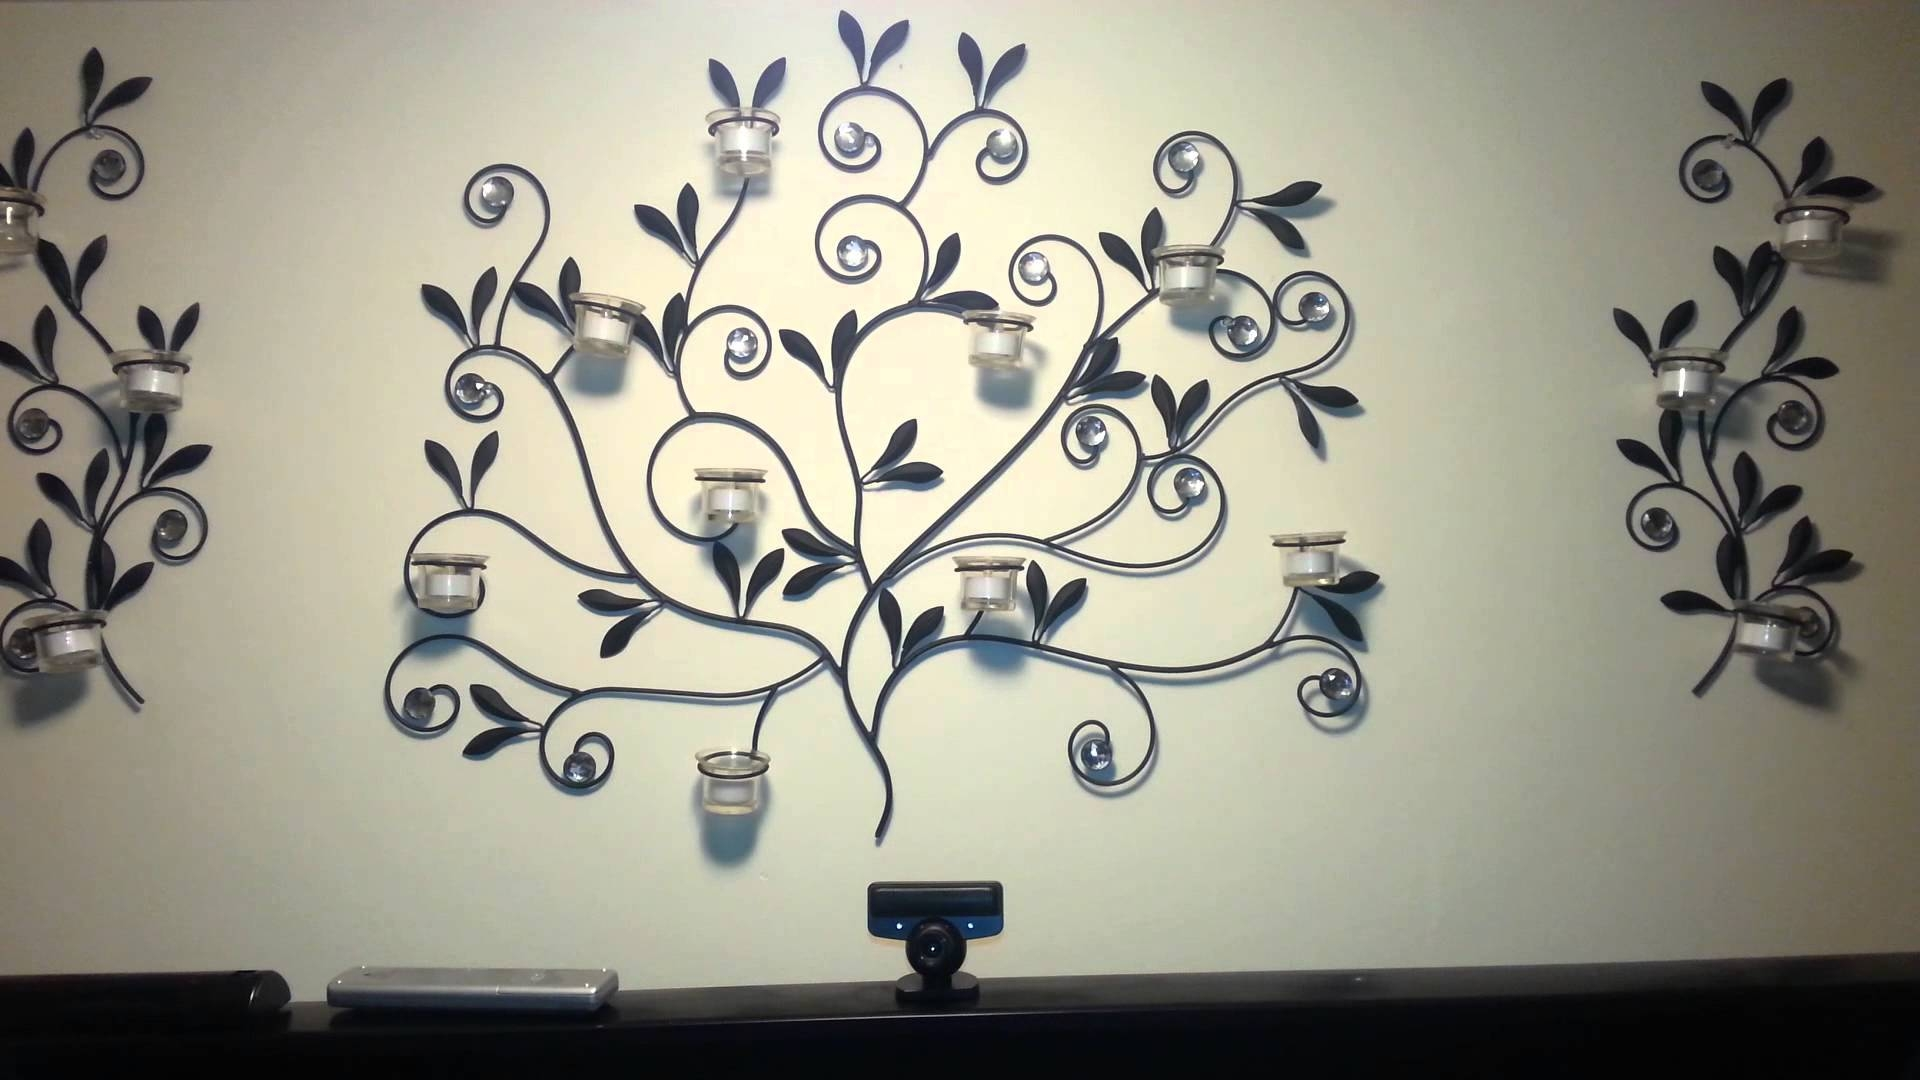 Walmart Metal Wall Art – Youtube Intended For Recent Walmart Wall Stickers (View 18 of 25)